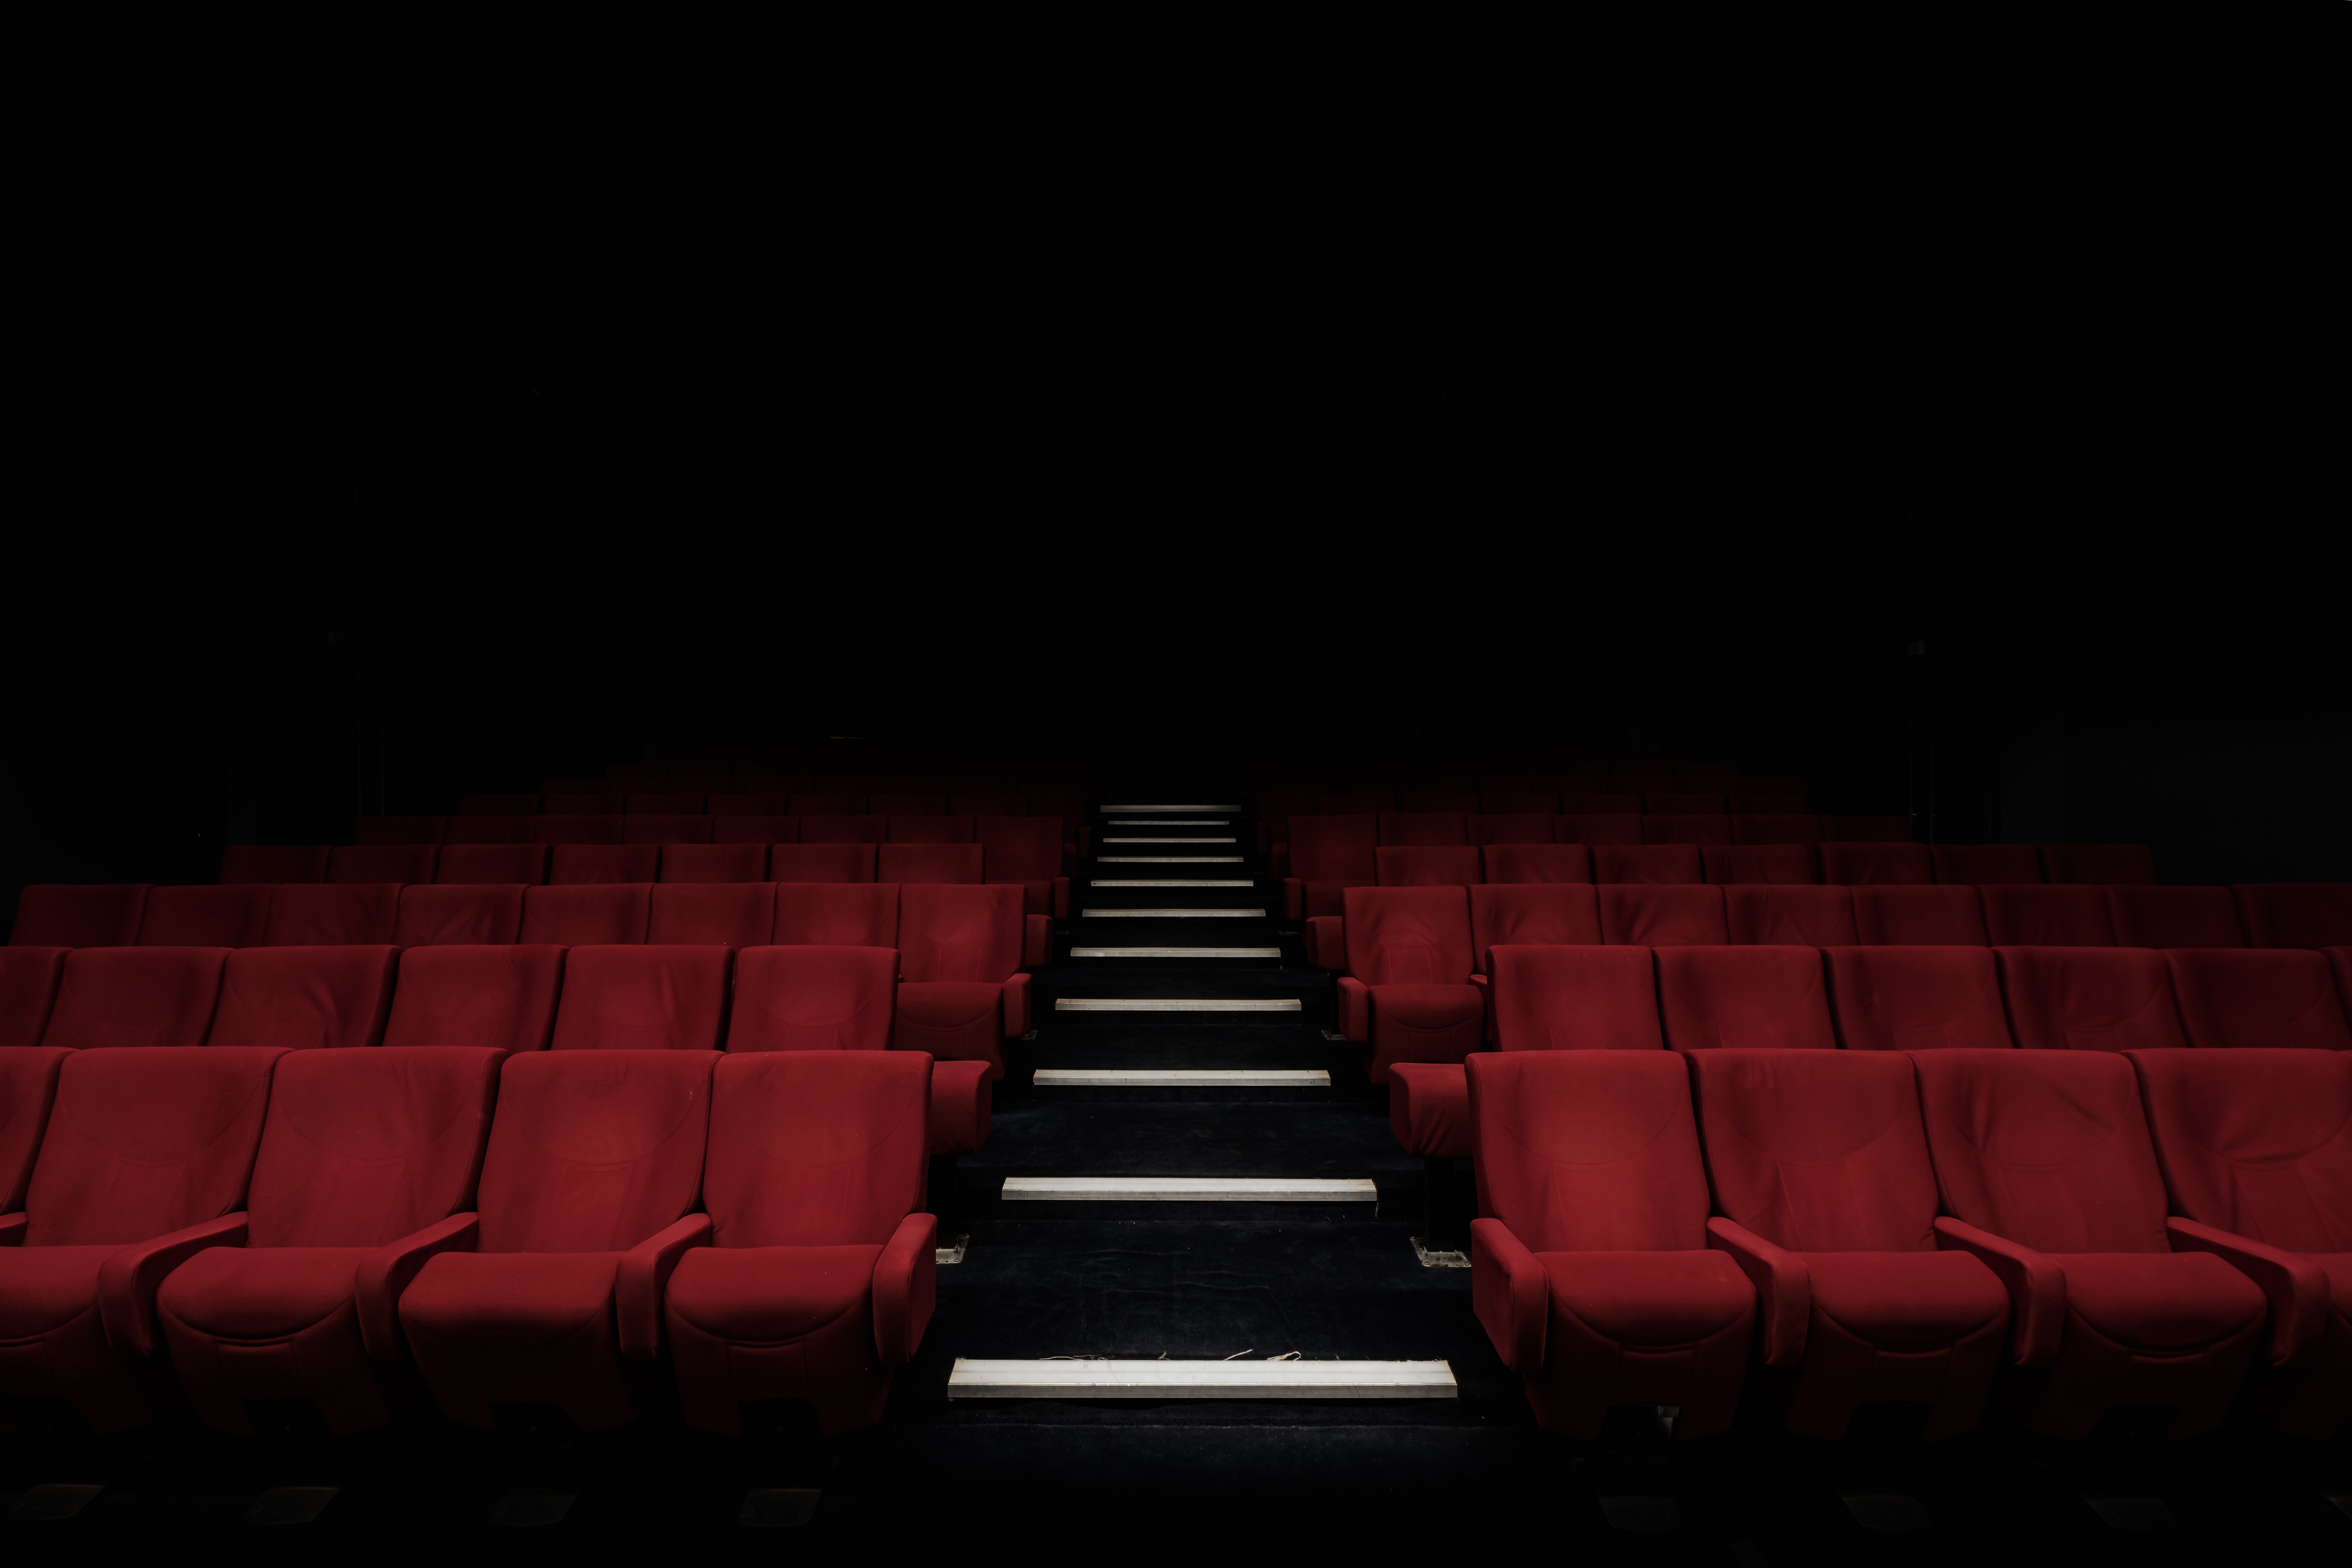 Interior of cinema hall with red chairs